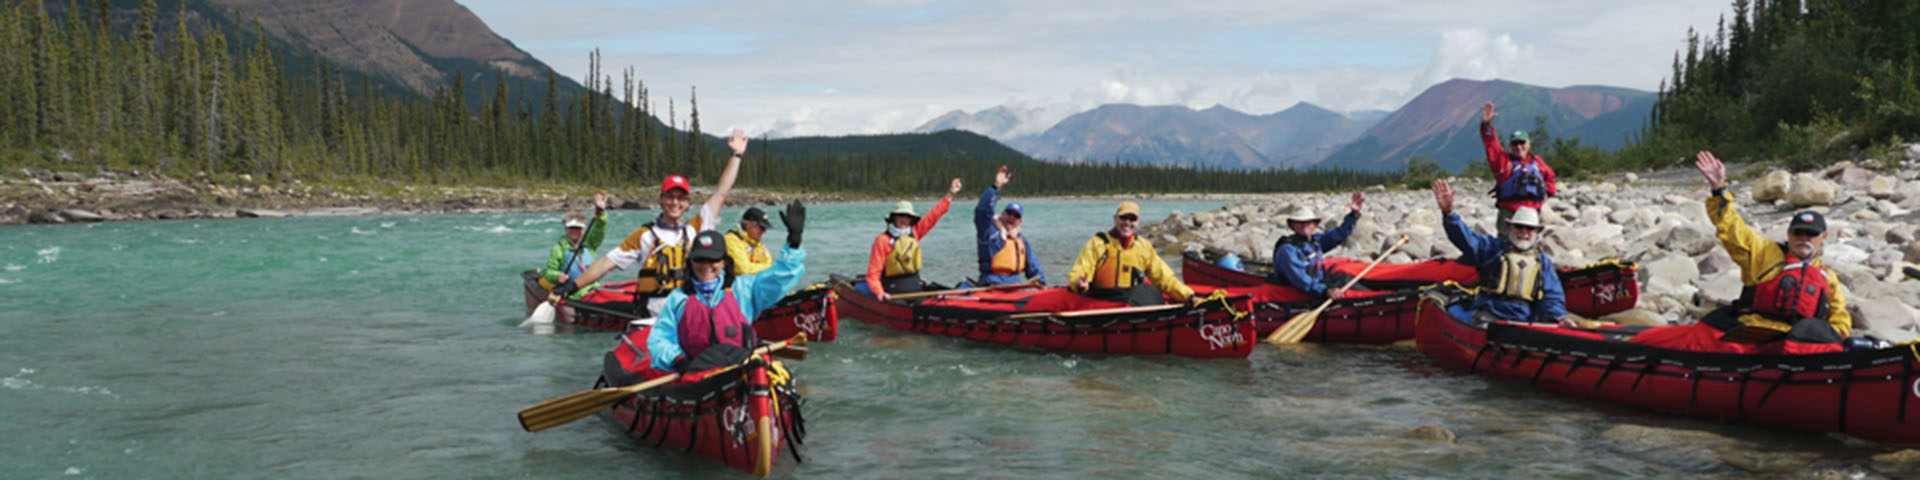 Keele River, Northwest Teritories by Canoe North Adventures - Image 218